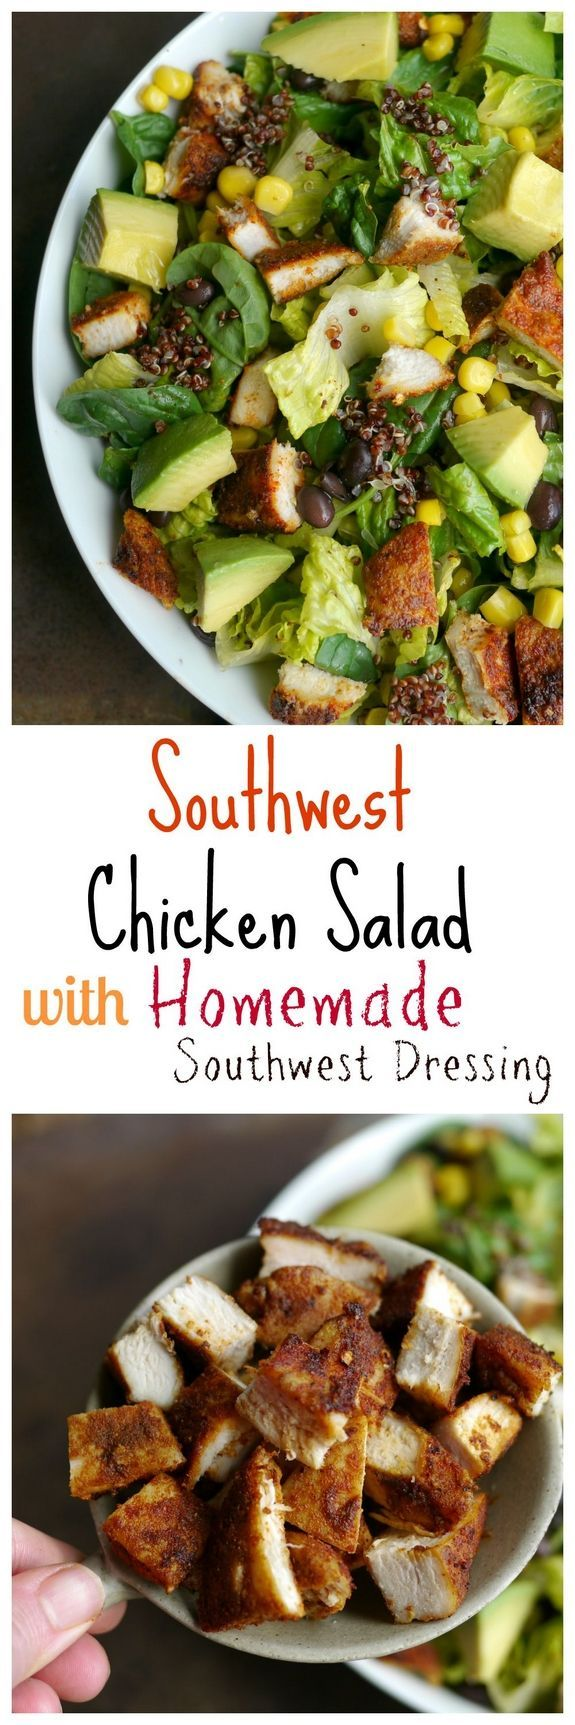 Southwest Chicken Salad with Homemade Southwest Dressing ~ So delicious, light, and flavorful!